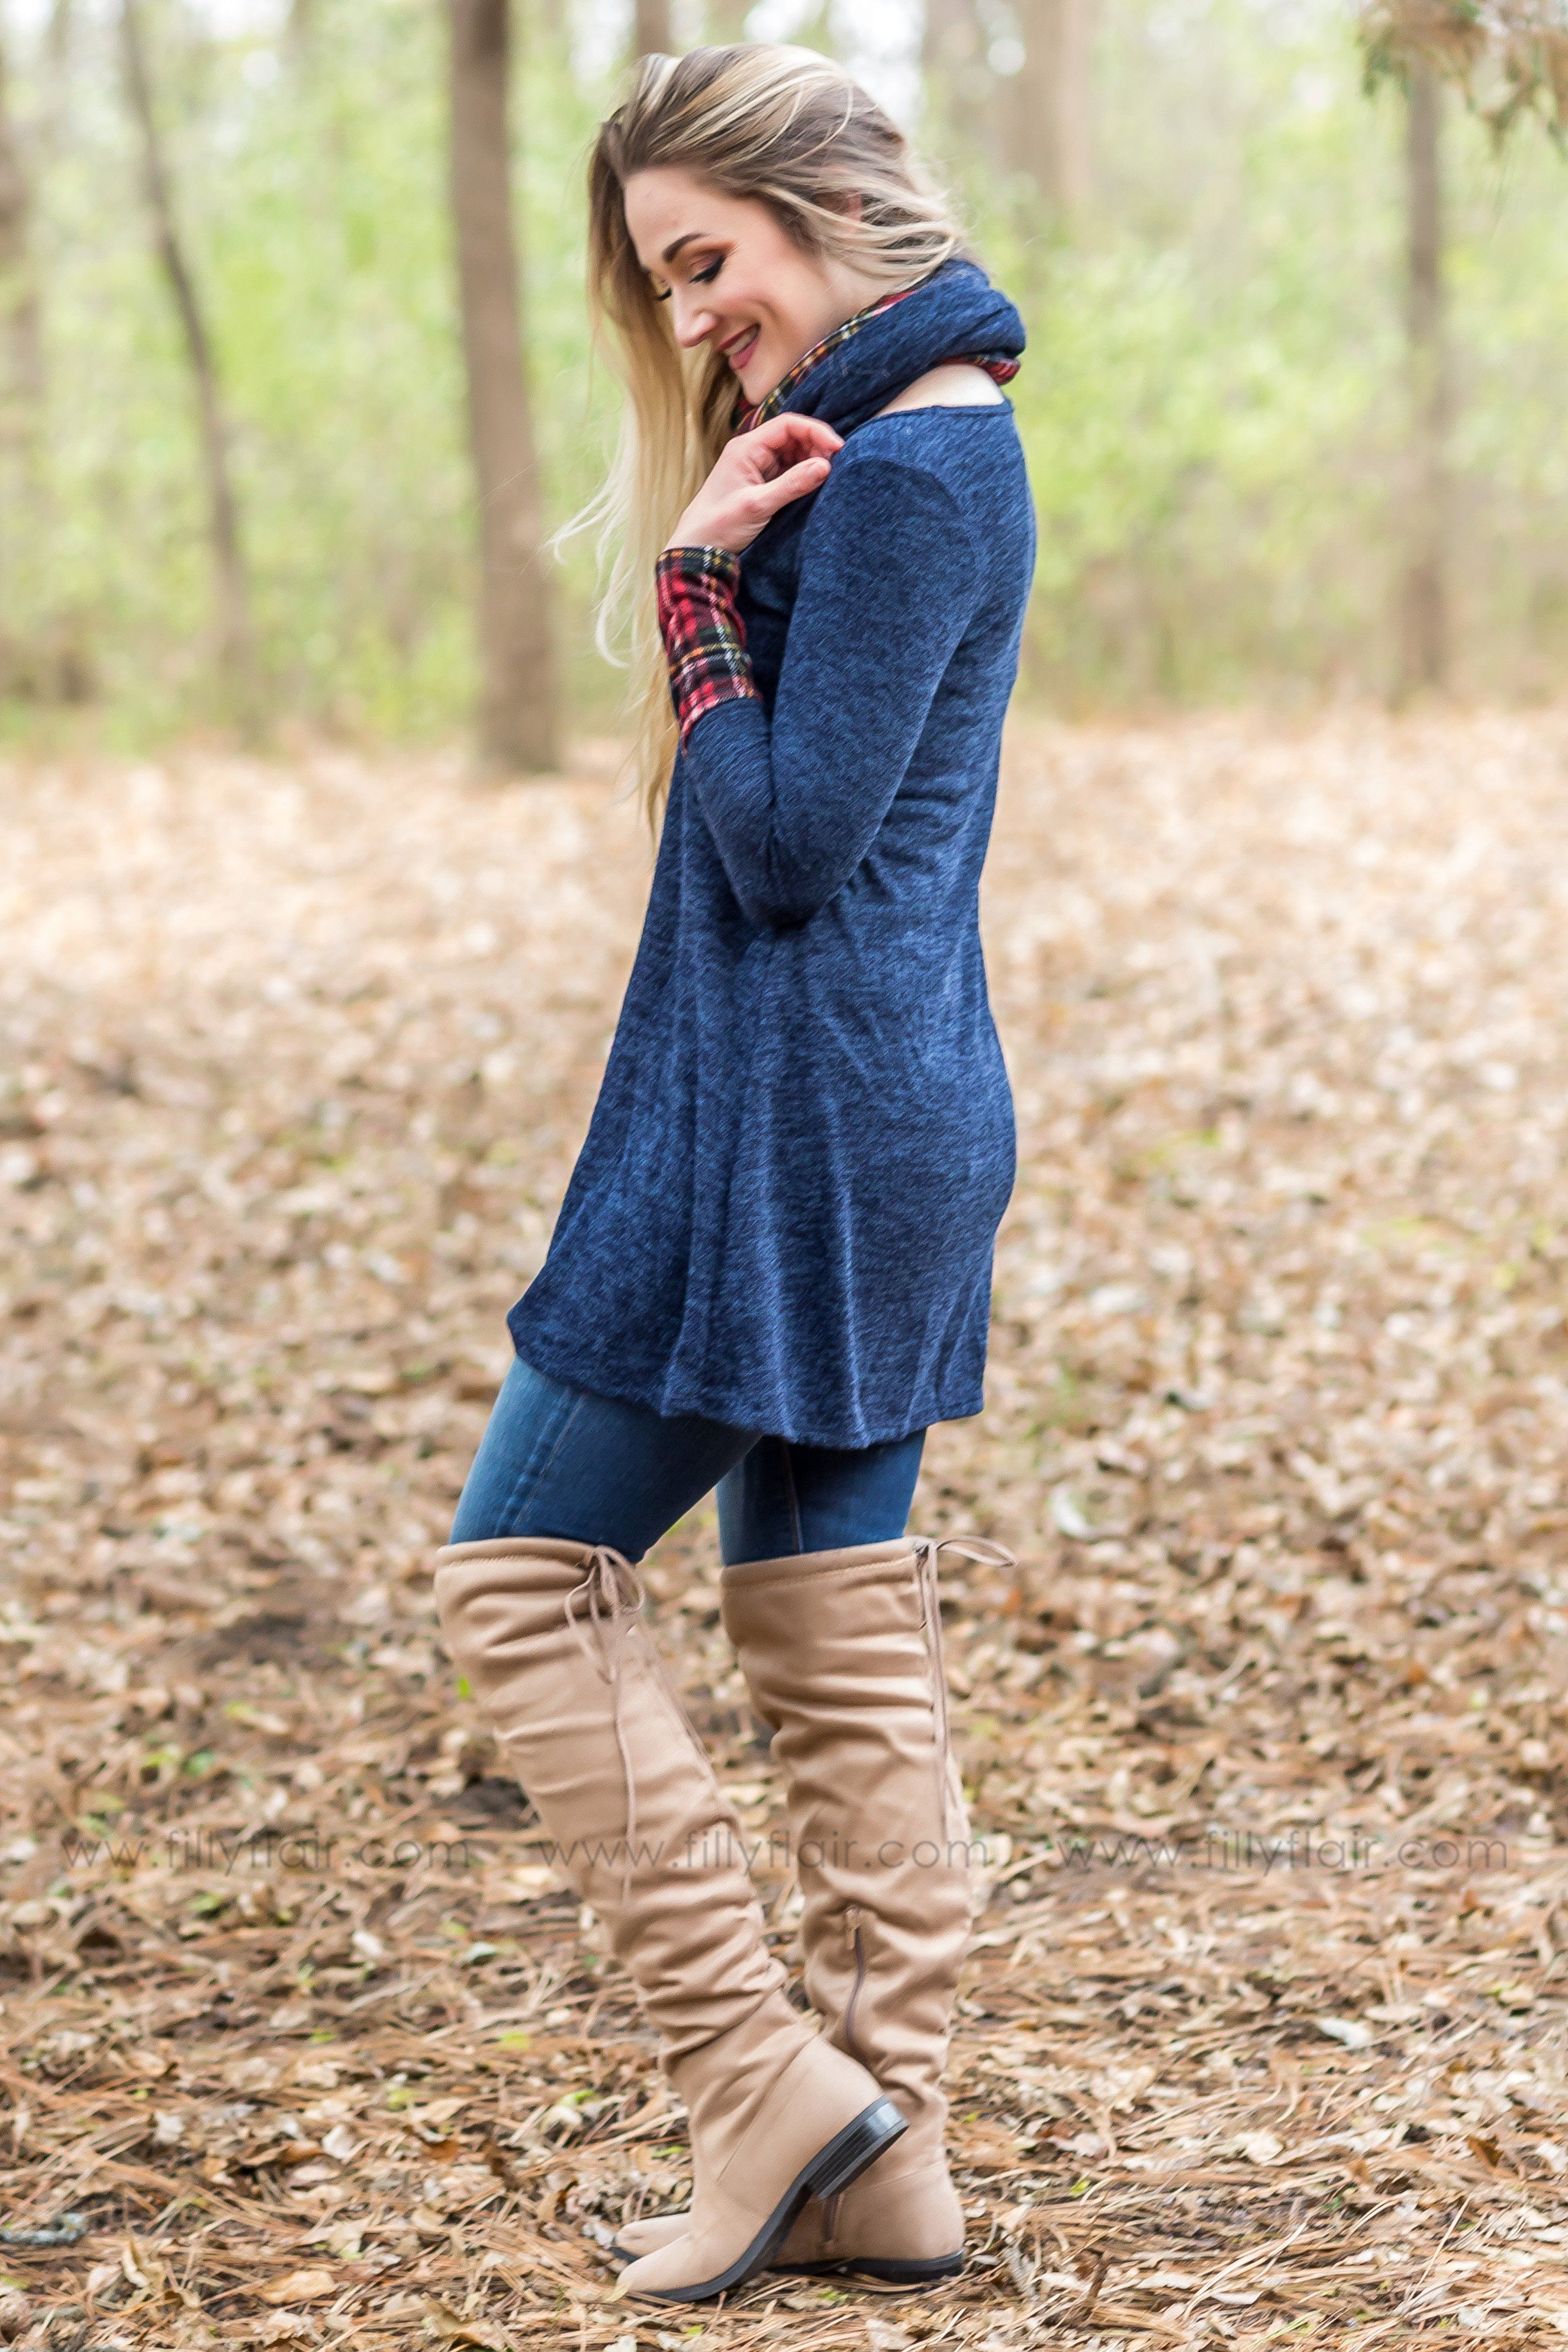 Some Kind of Way Long Sleeve Red Plaid Tunic Dress in Navy Blue - Filly Flair